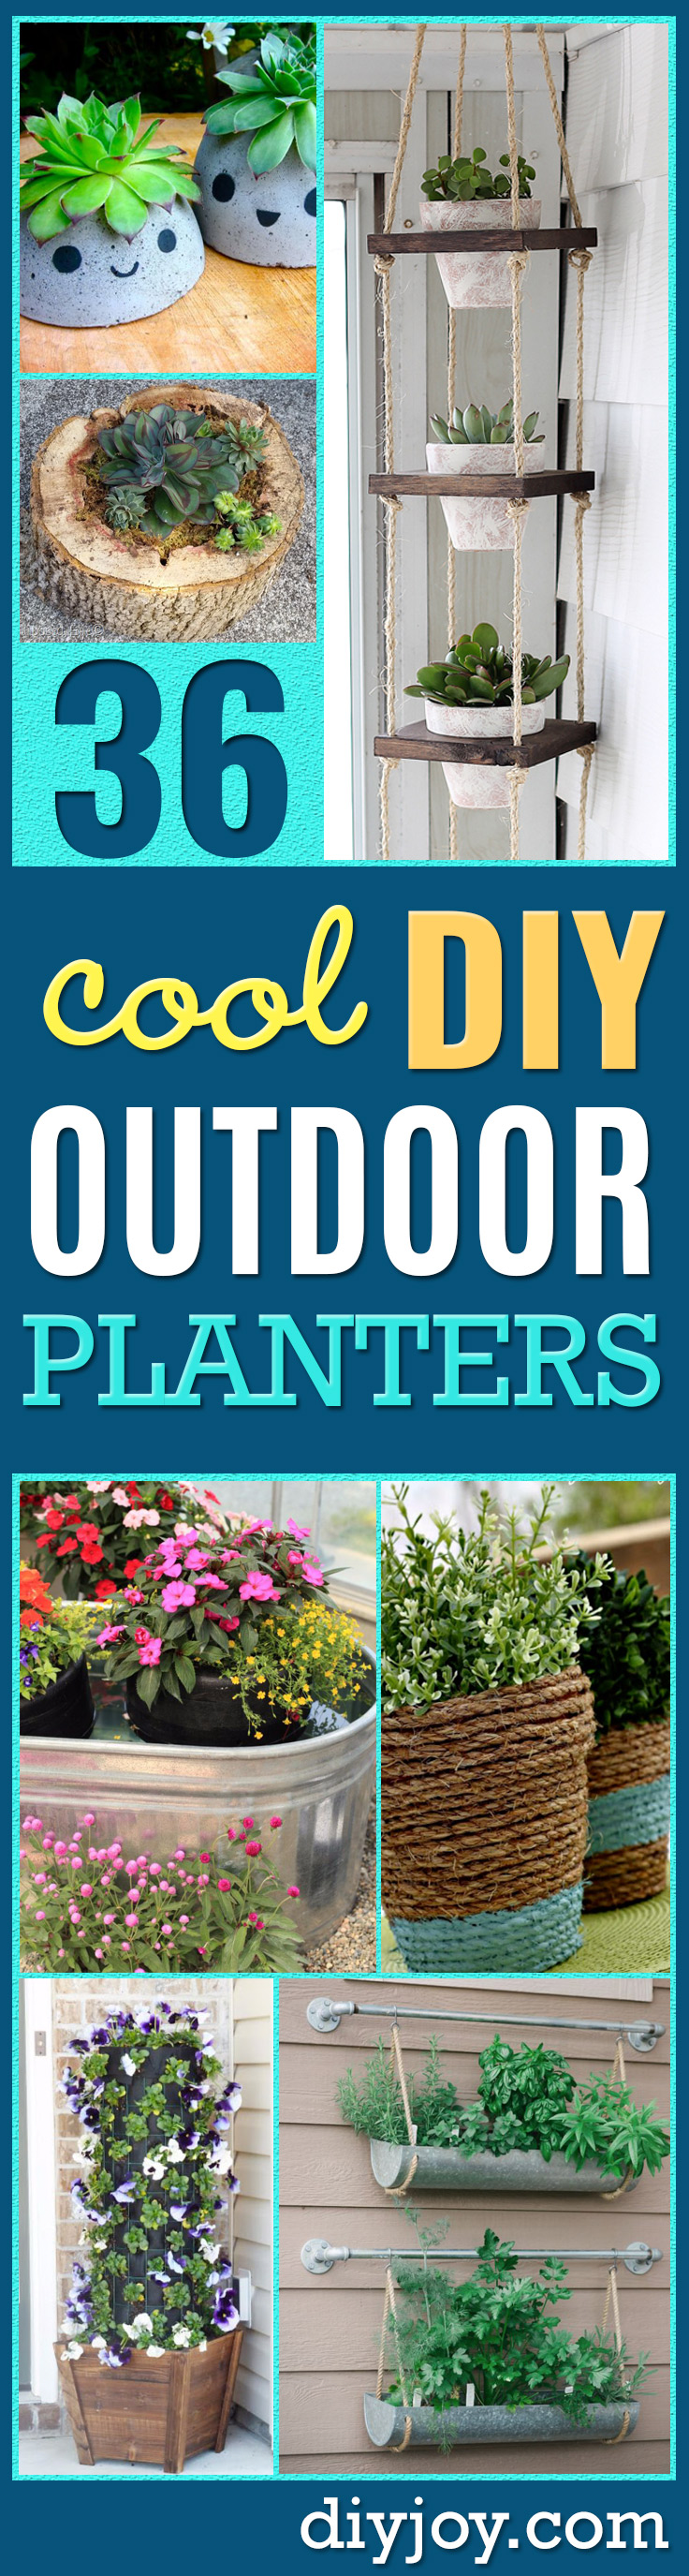 DIY Outdoor Planters - Easy Planter Ideas to Make for The Porch, Pation and Backyard - Your Plants Will Love These DIY Plant Holders, Potting Ideas and Planter Boxes - Gardening DIY for Big and Small Plants Outdoors - Concrete, Wood, Cheap, Simple, Modern and Rustic Projects With Step by Step Instructions http://diyjoy.com/diy-oudoor-planters